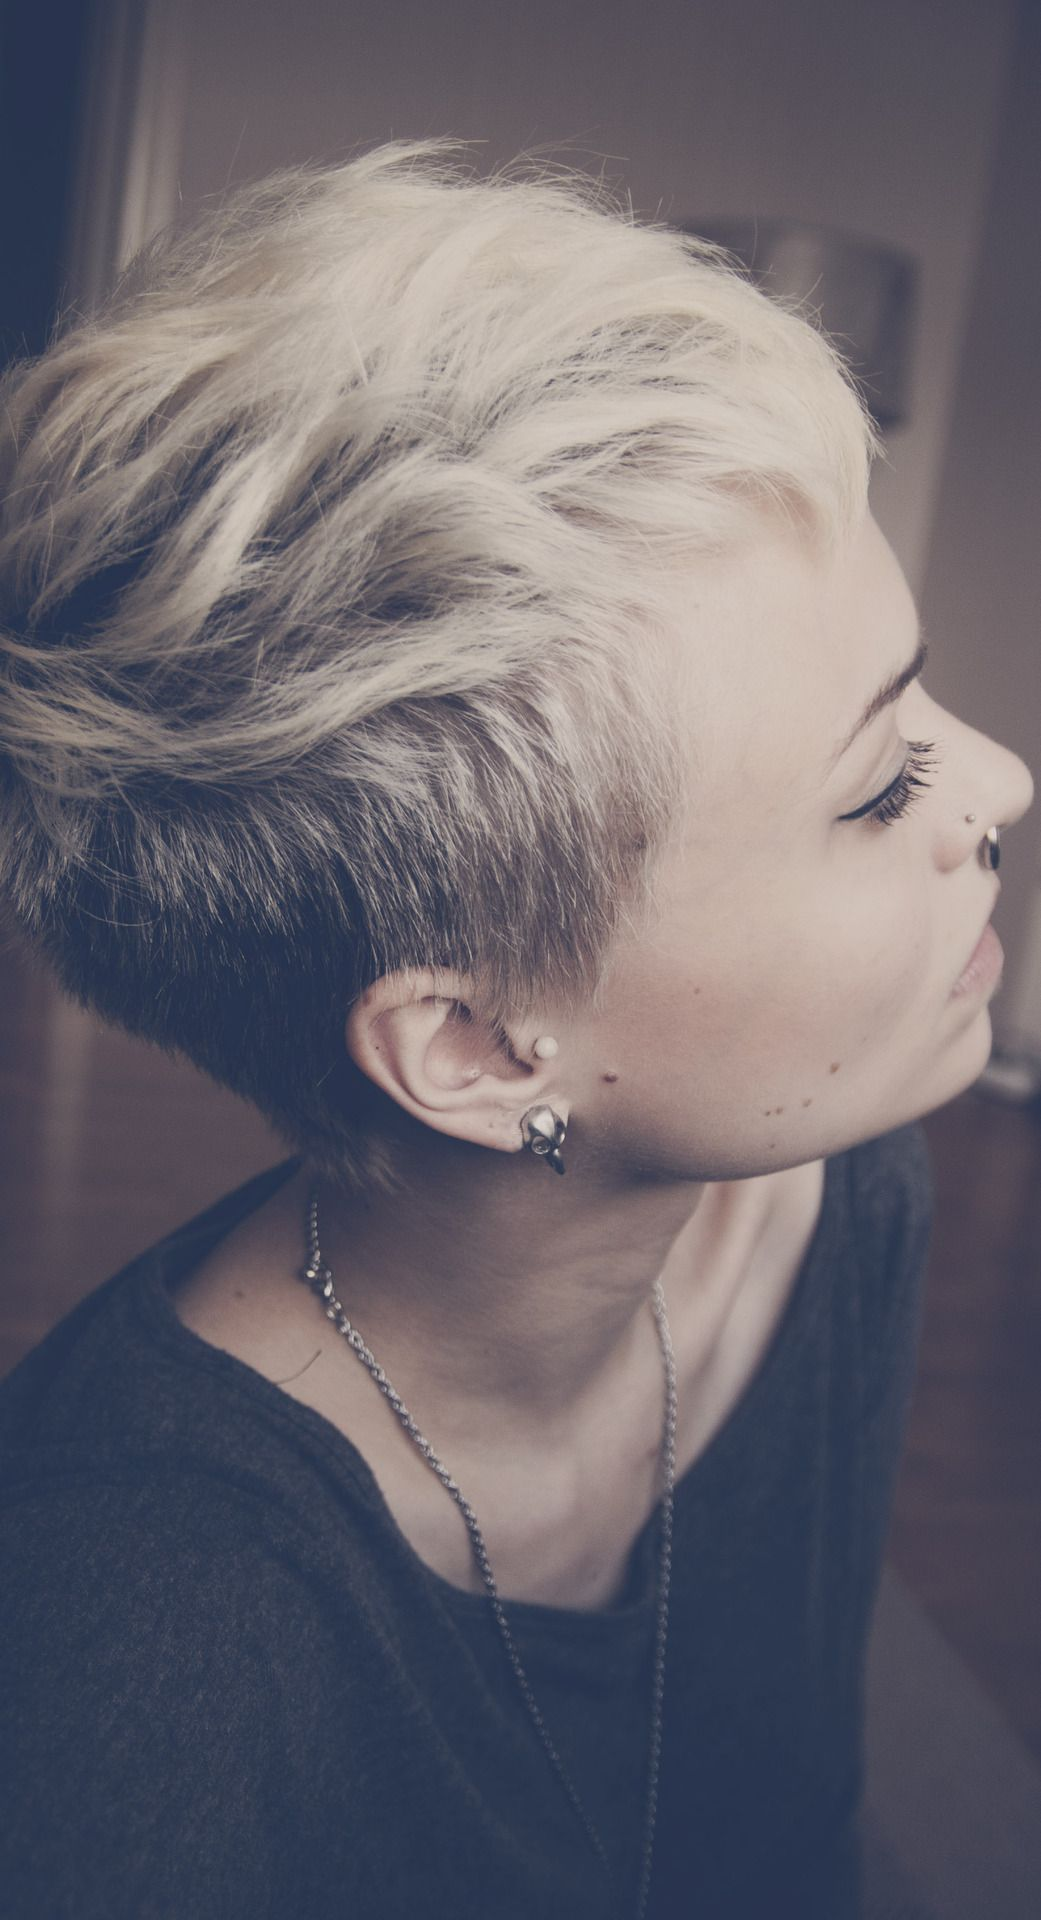 I am the biggest fan of this shaved on the side long on top style